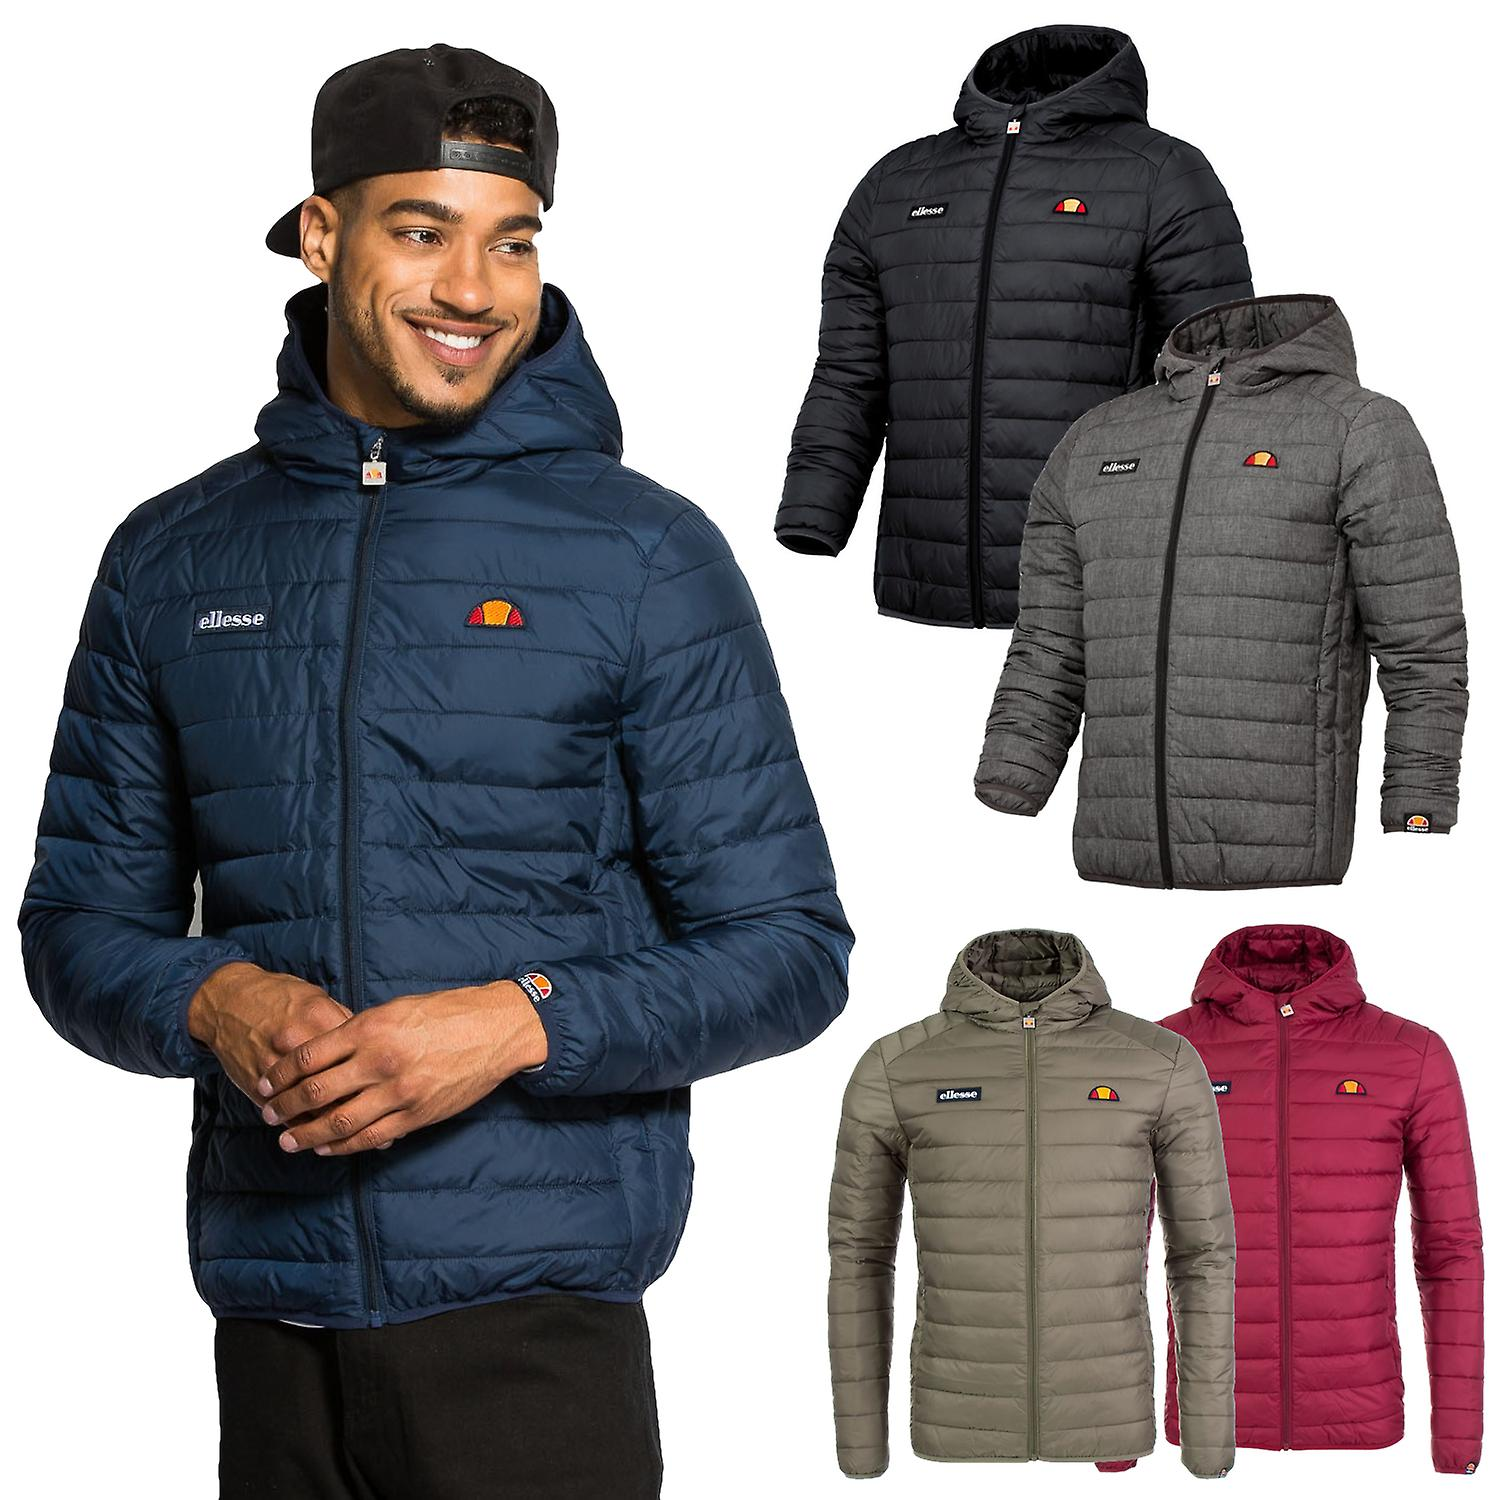 ellesse jacket lombardy fruugo. Black Bedroom Furniture Sets. Home Design Ideas